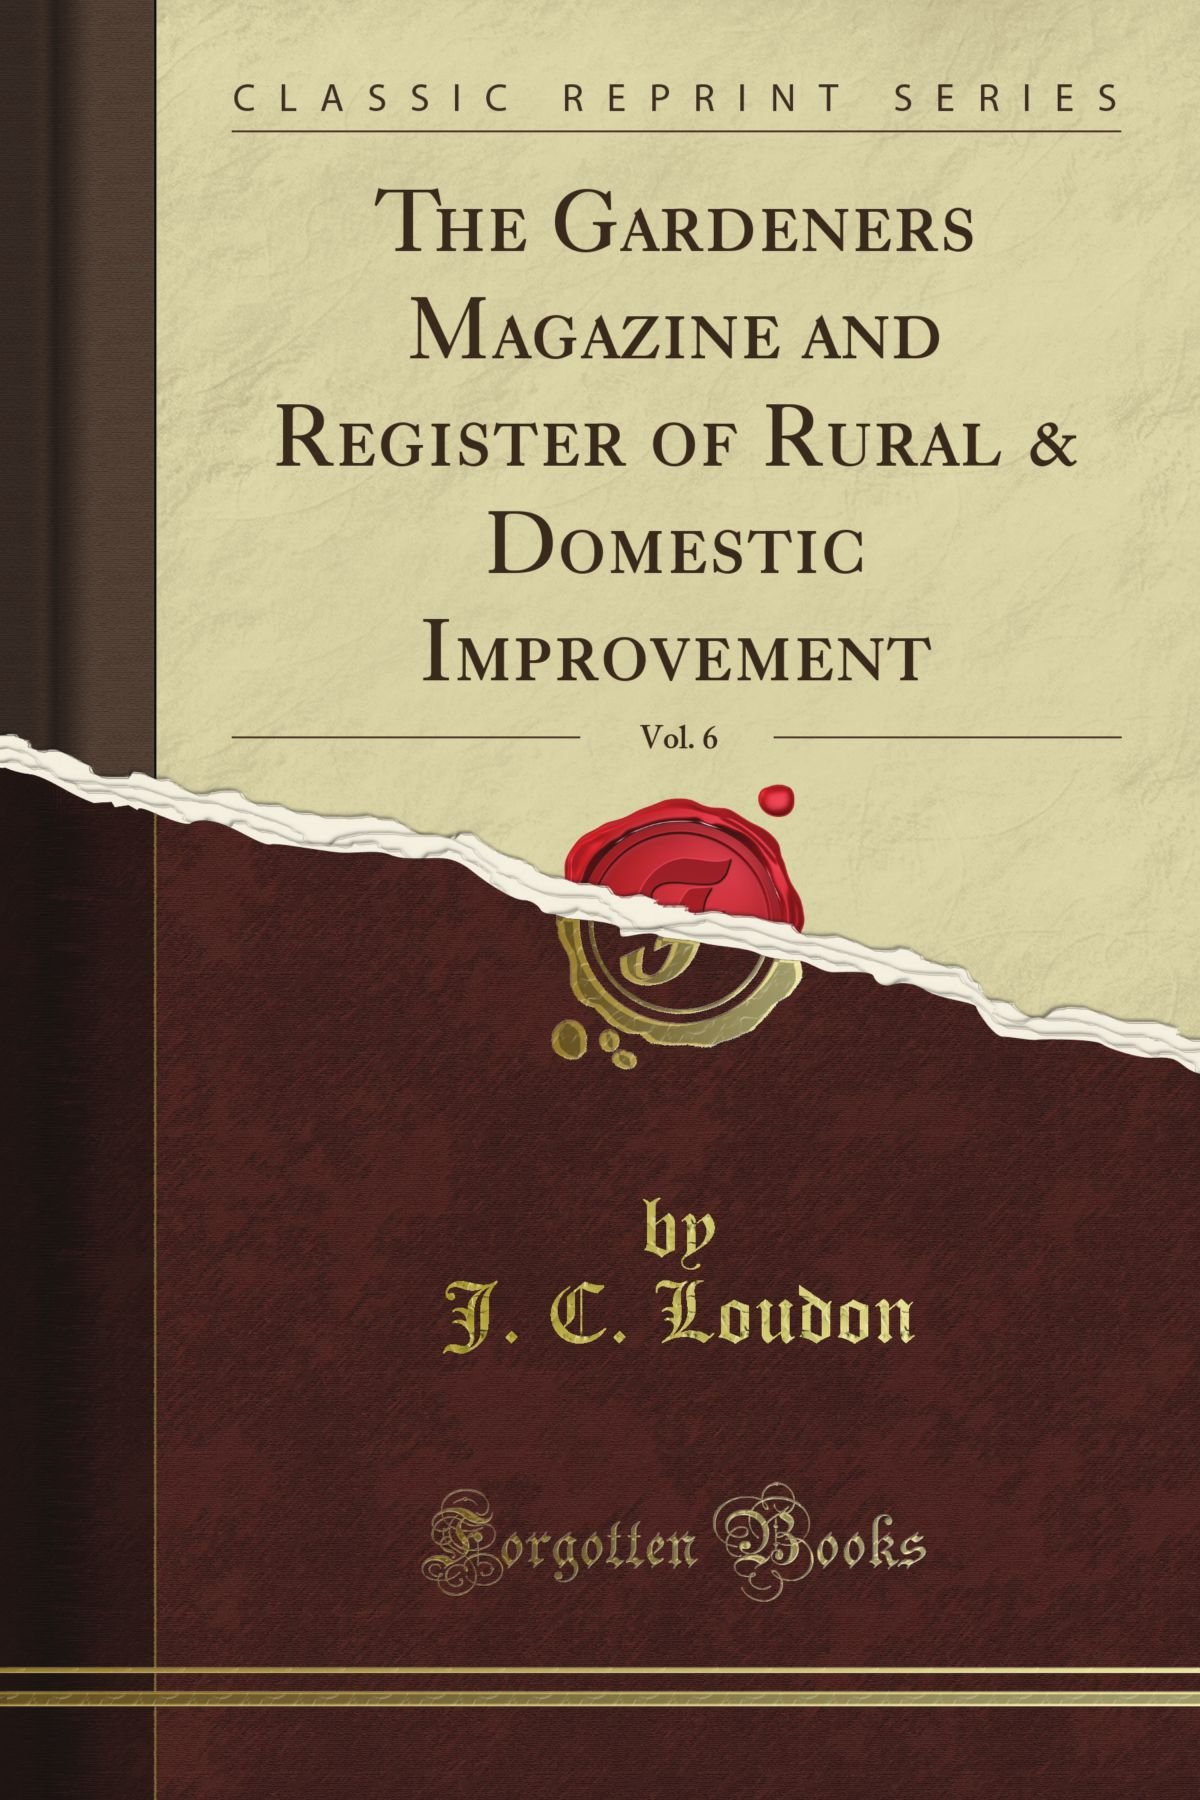 Read Online The Gardener's Magazine and Register of Rural & Domestic Improvement, Vol. 6 (Classic Reprint) PDF